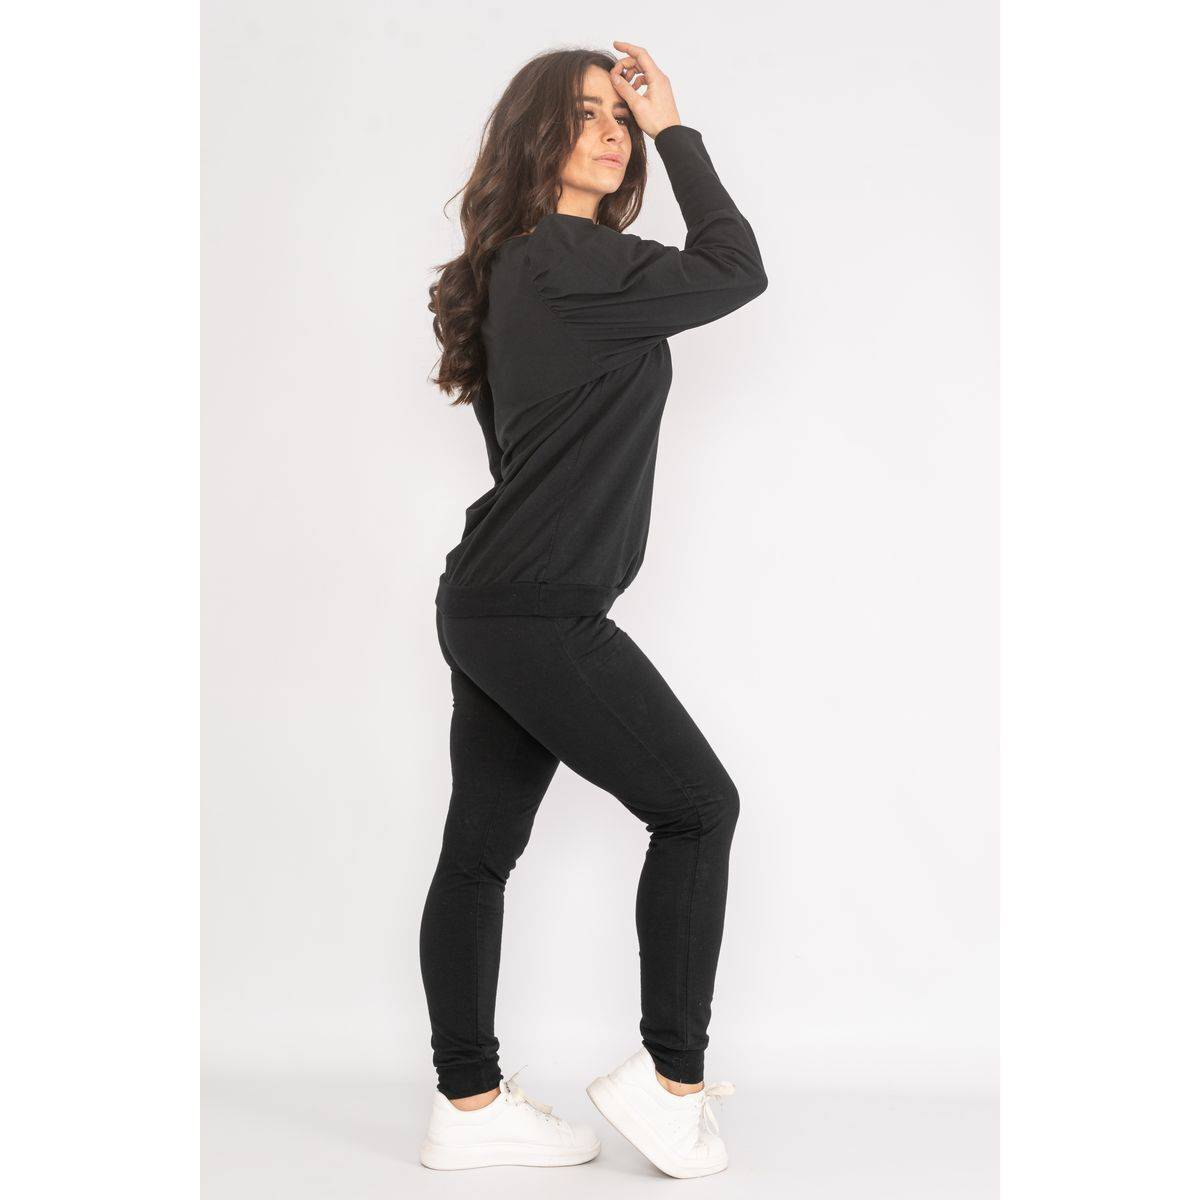 Puff shoulder loungewear set Lucy Sparks